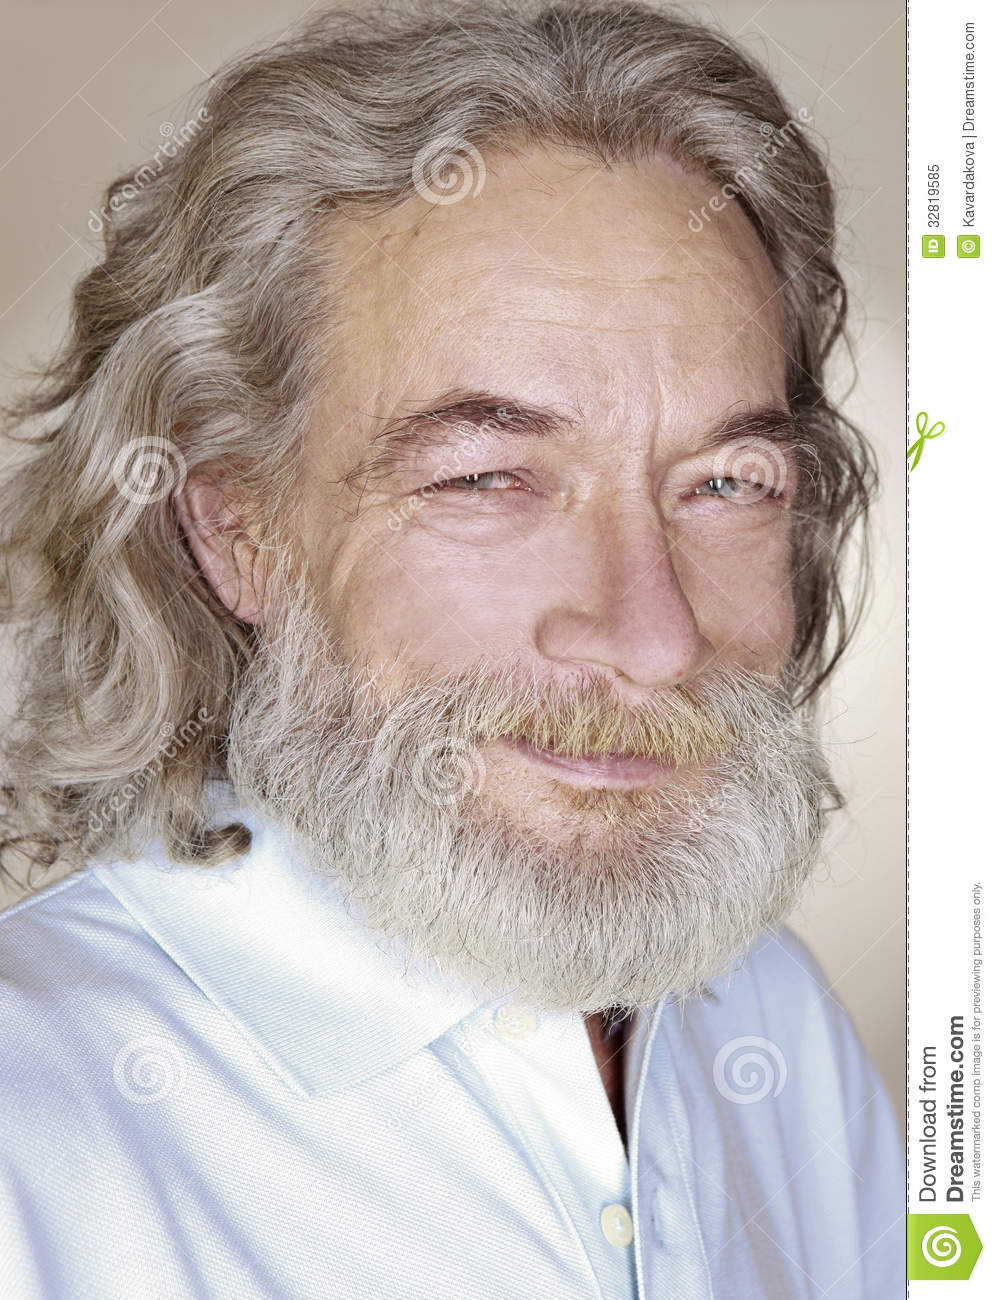 Adult Old Man With Gray Hair Smiles Royalty Free Stock